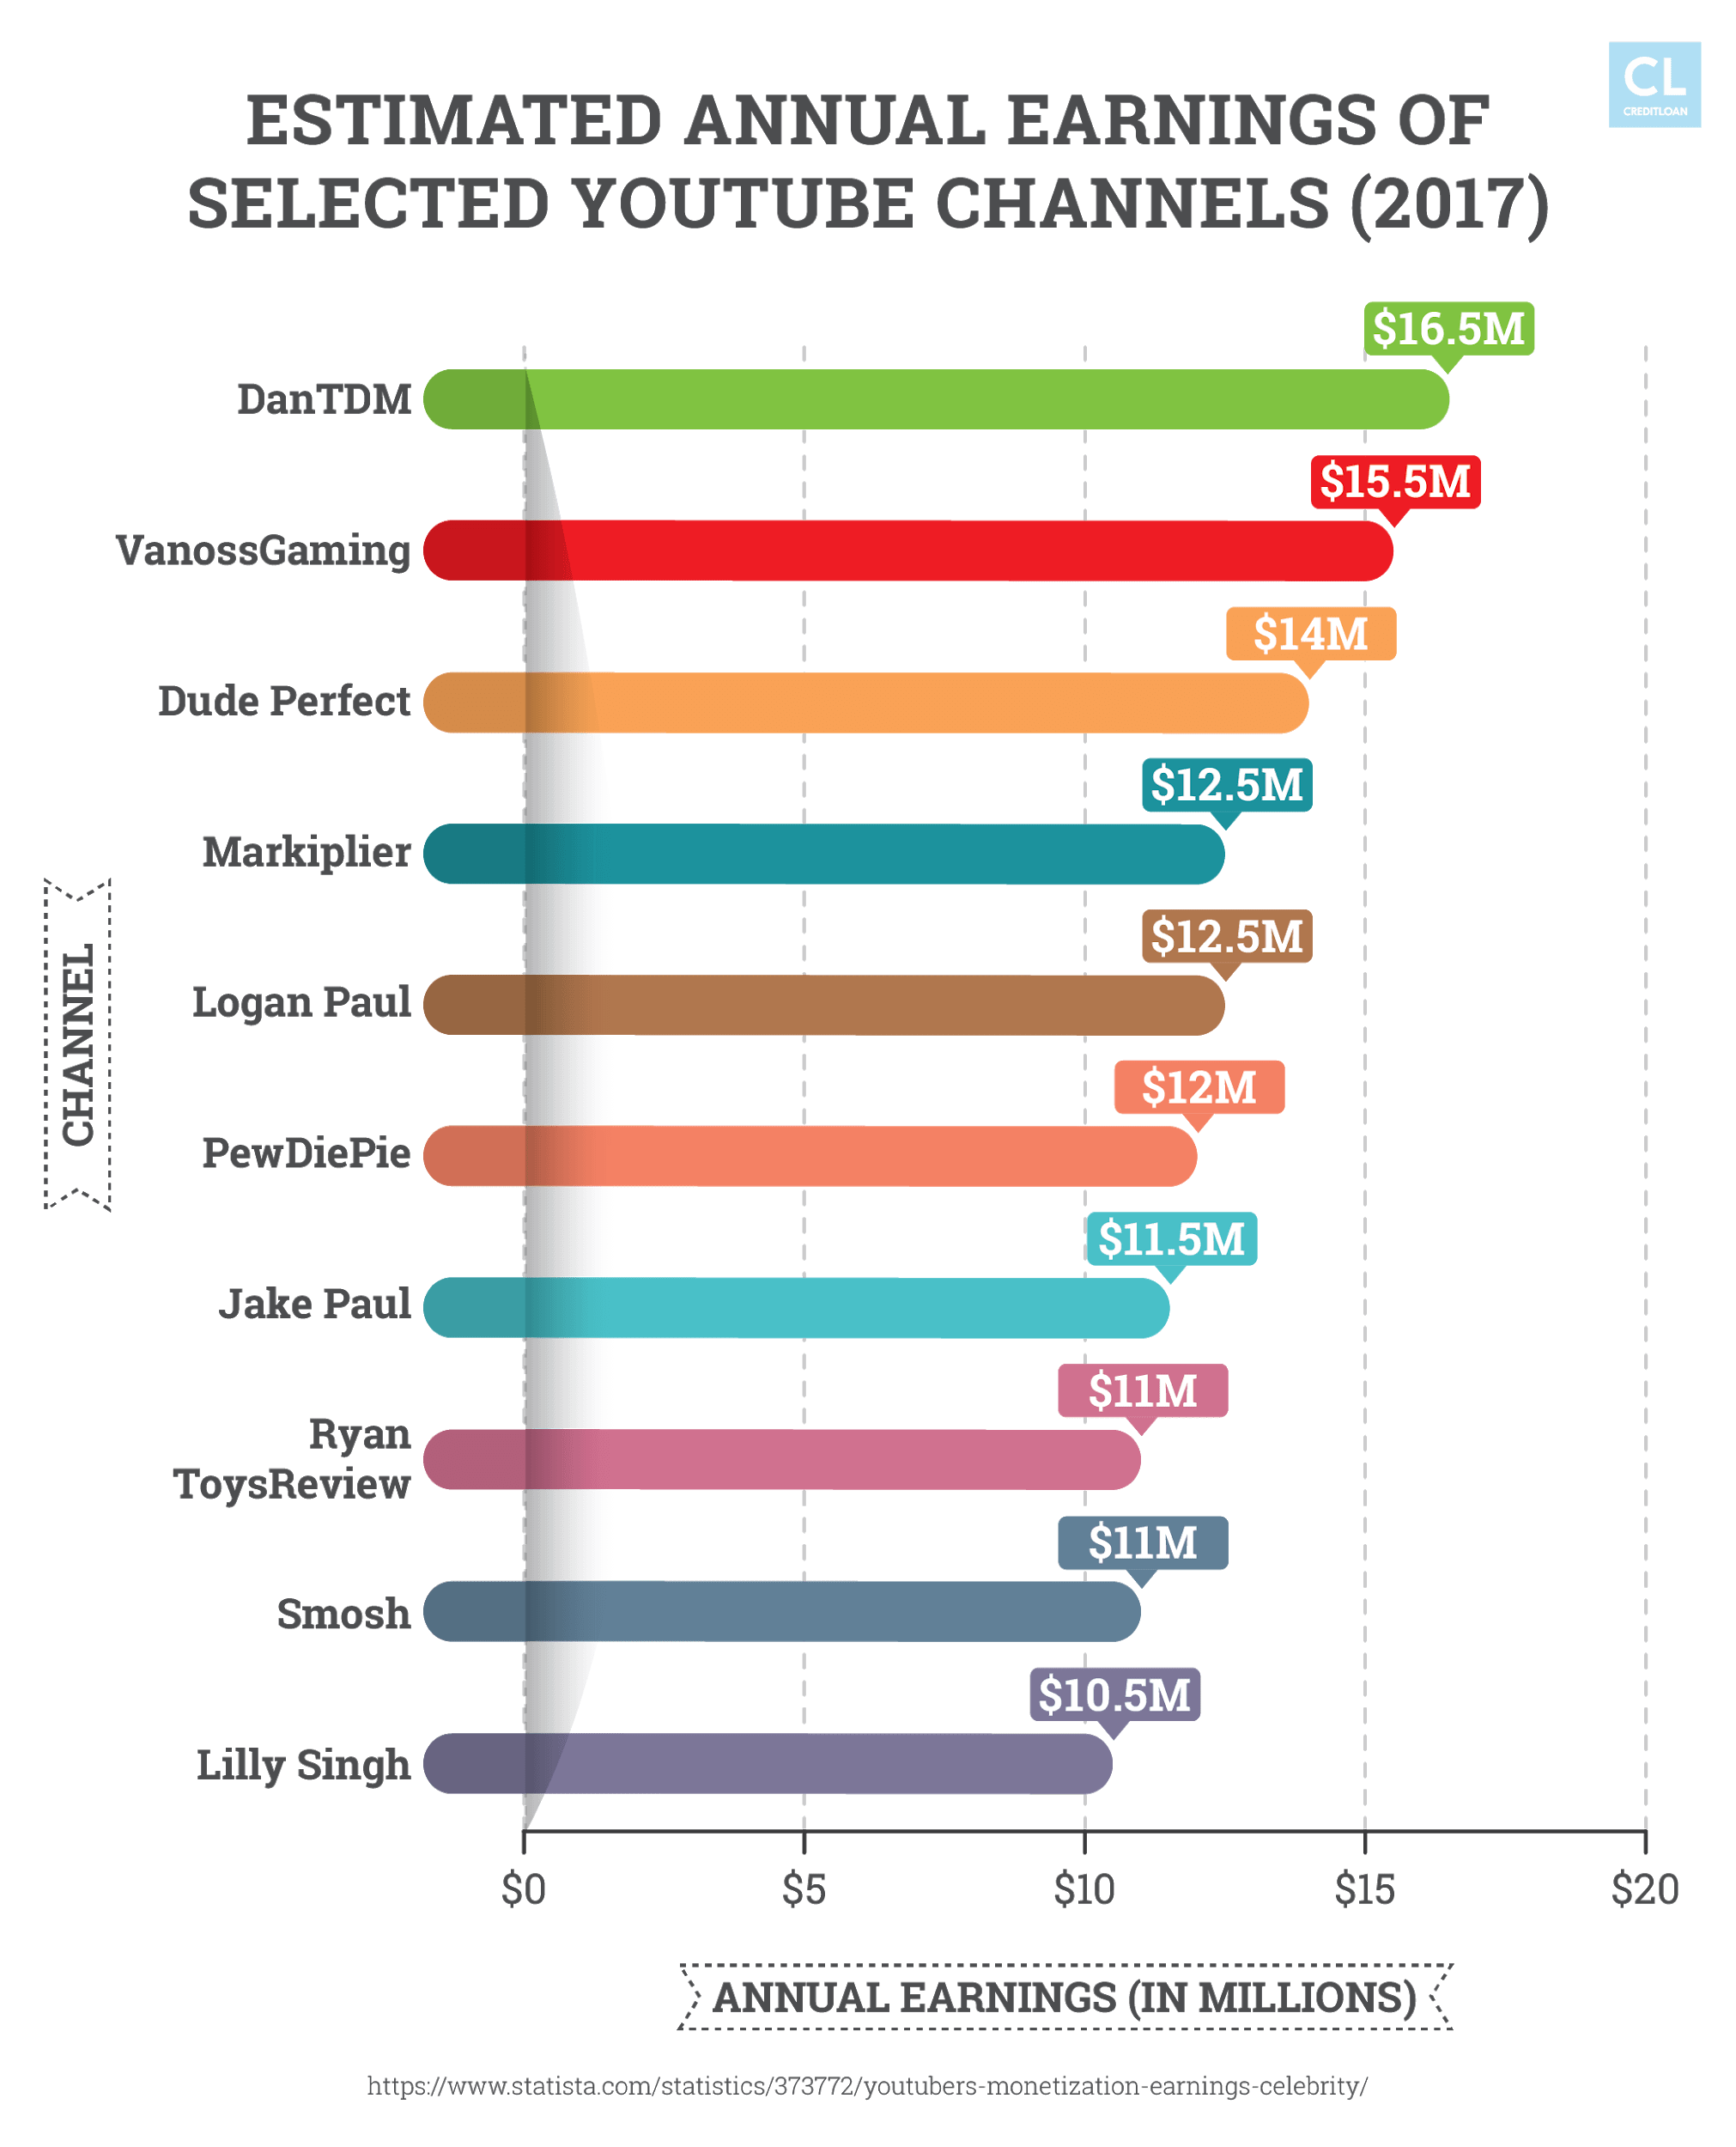 Estimated Annual Earnings of Selected YouTube Channels (2017)